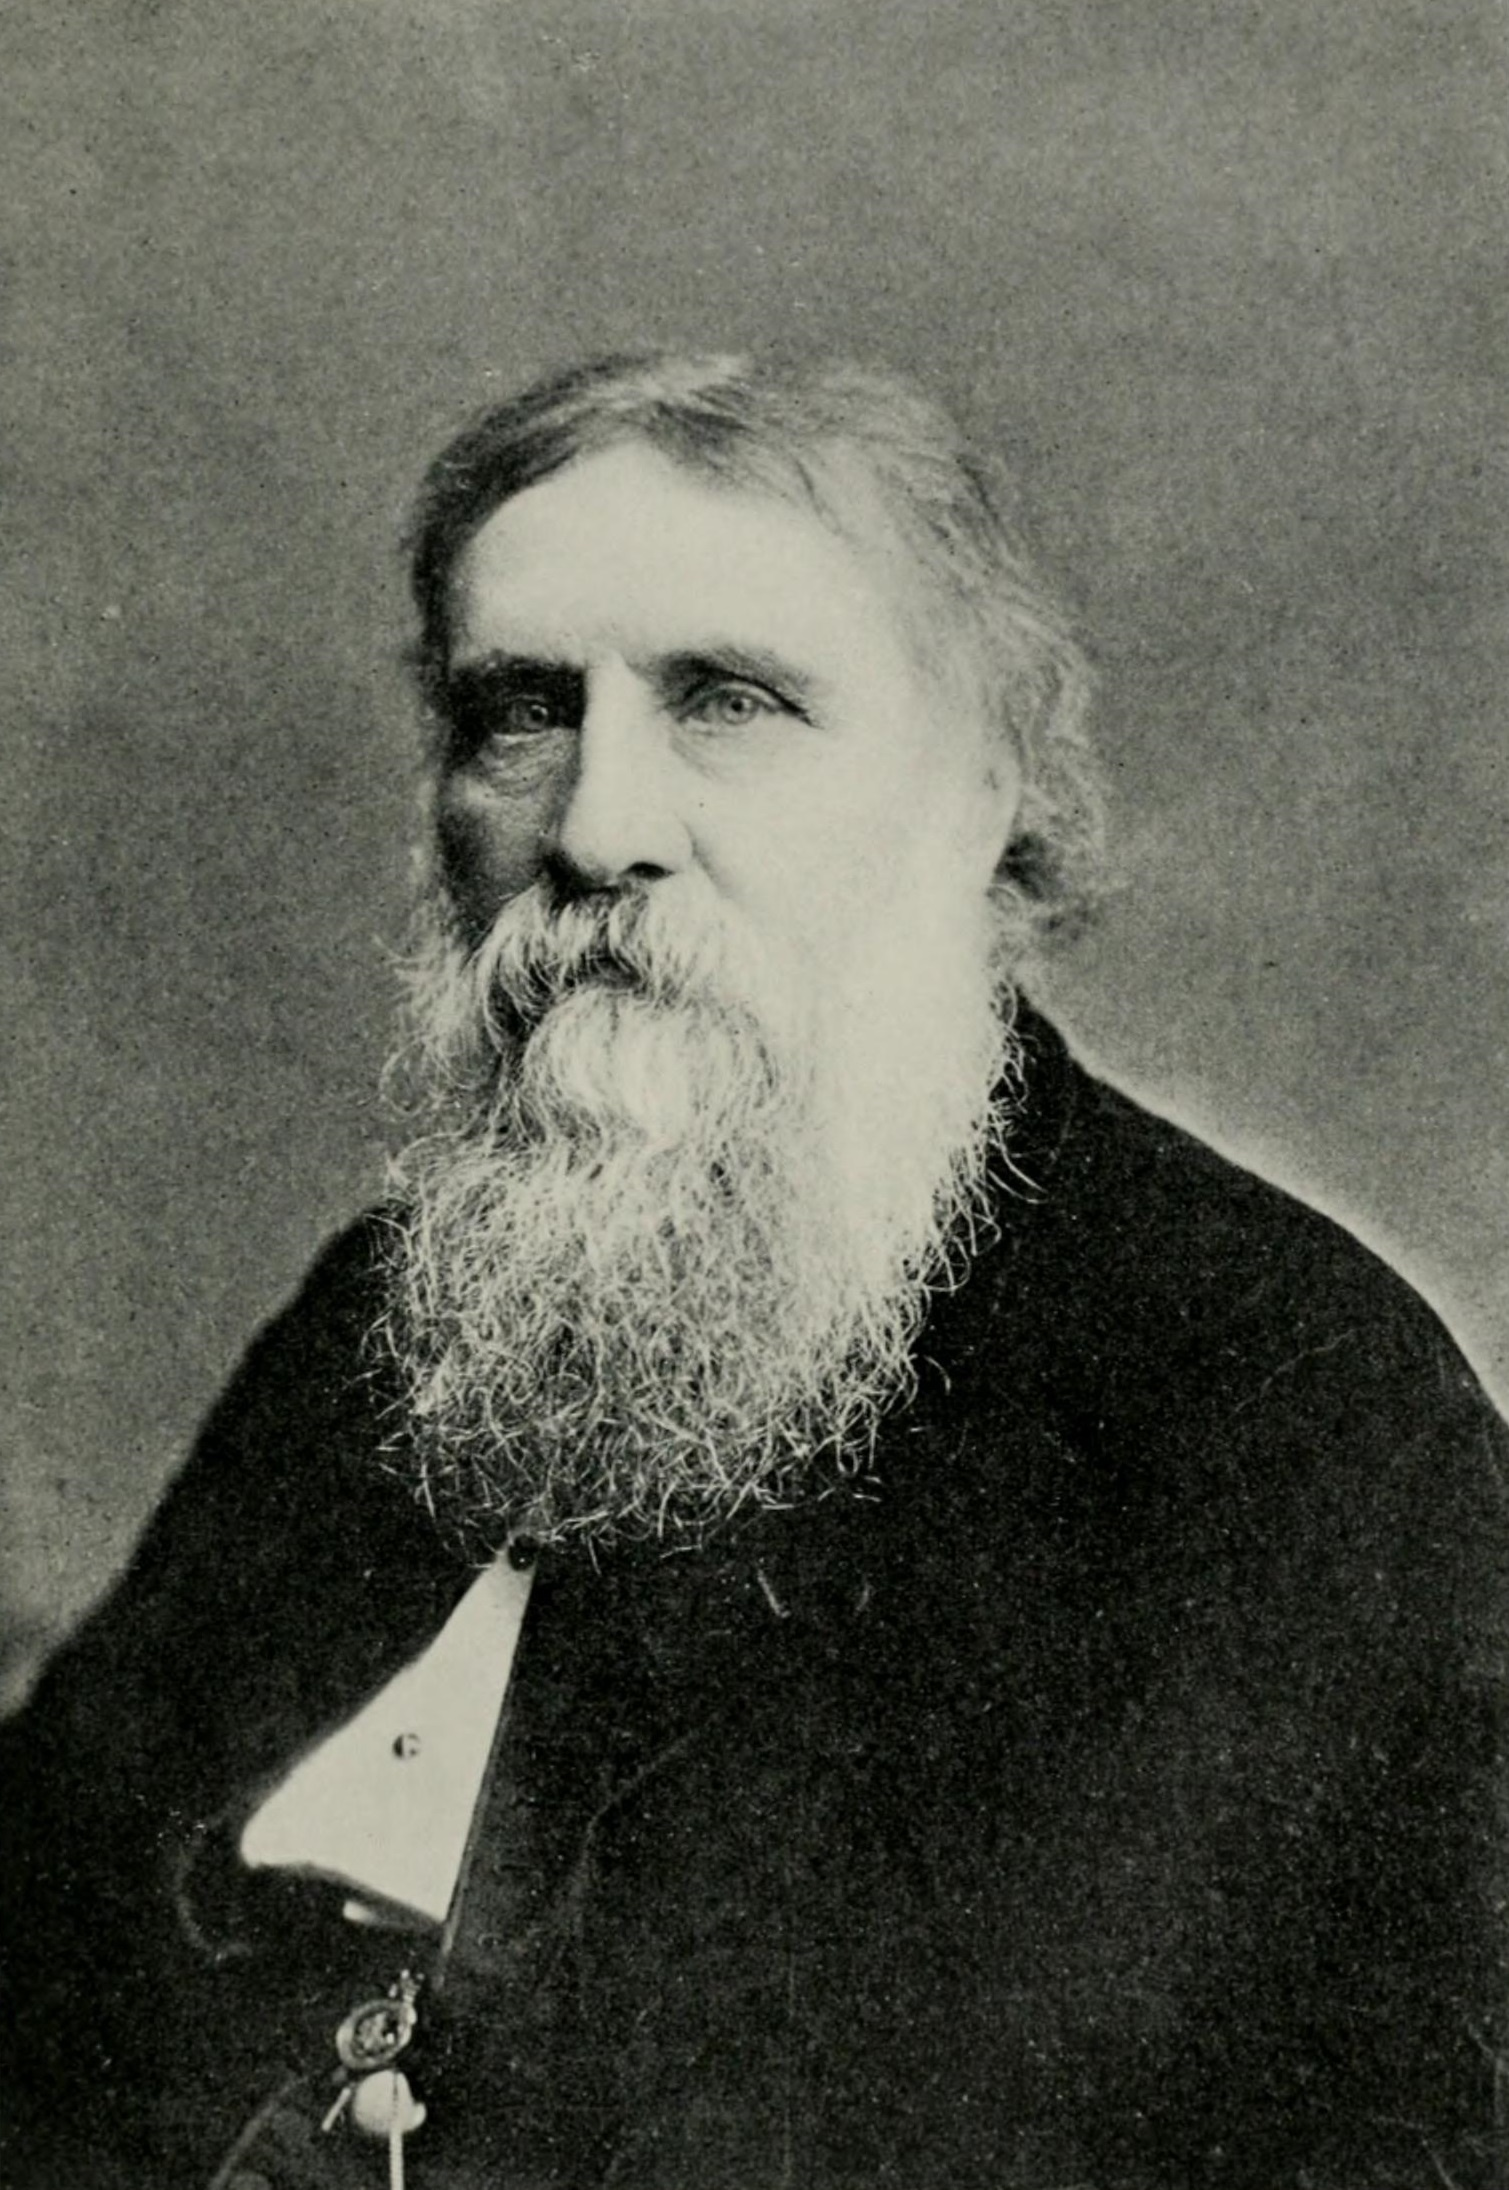 Portrait_of_George_MacDonald.jpg